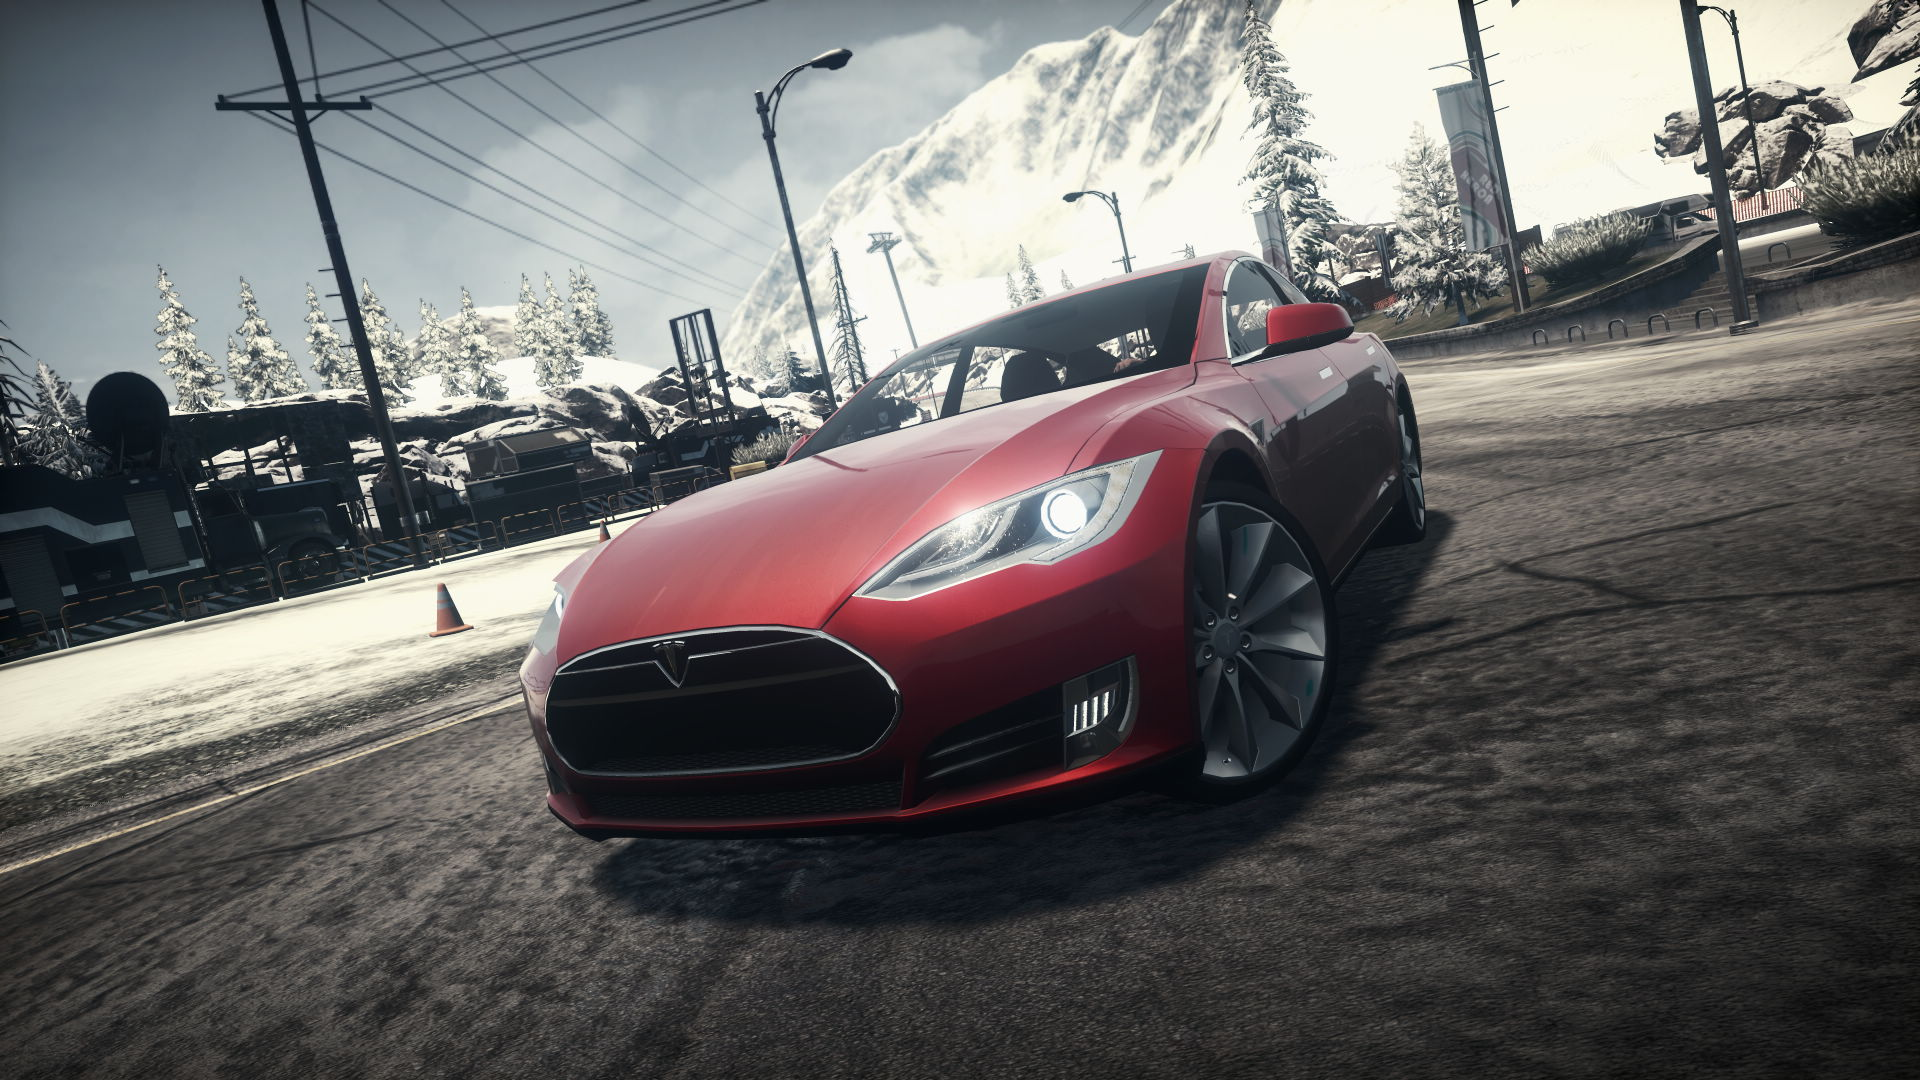 Tesla Model S (85D) | Need for Speed Wiki | FANDOM powered